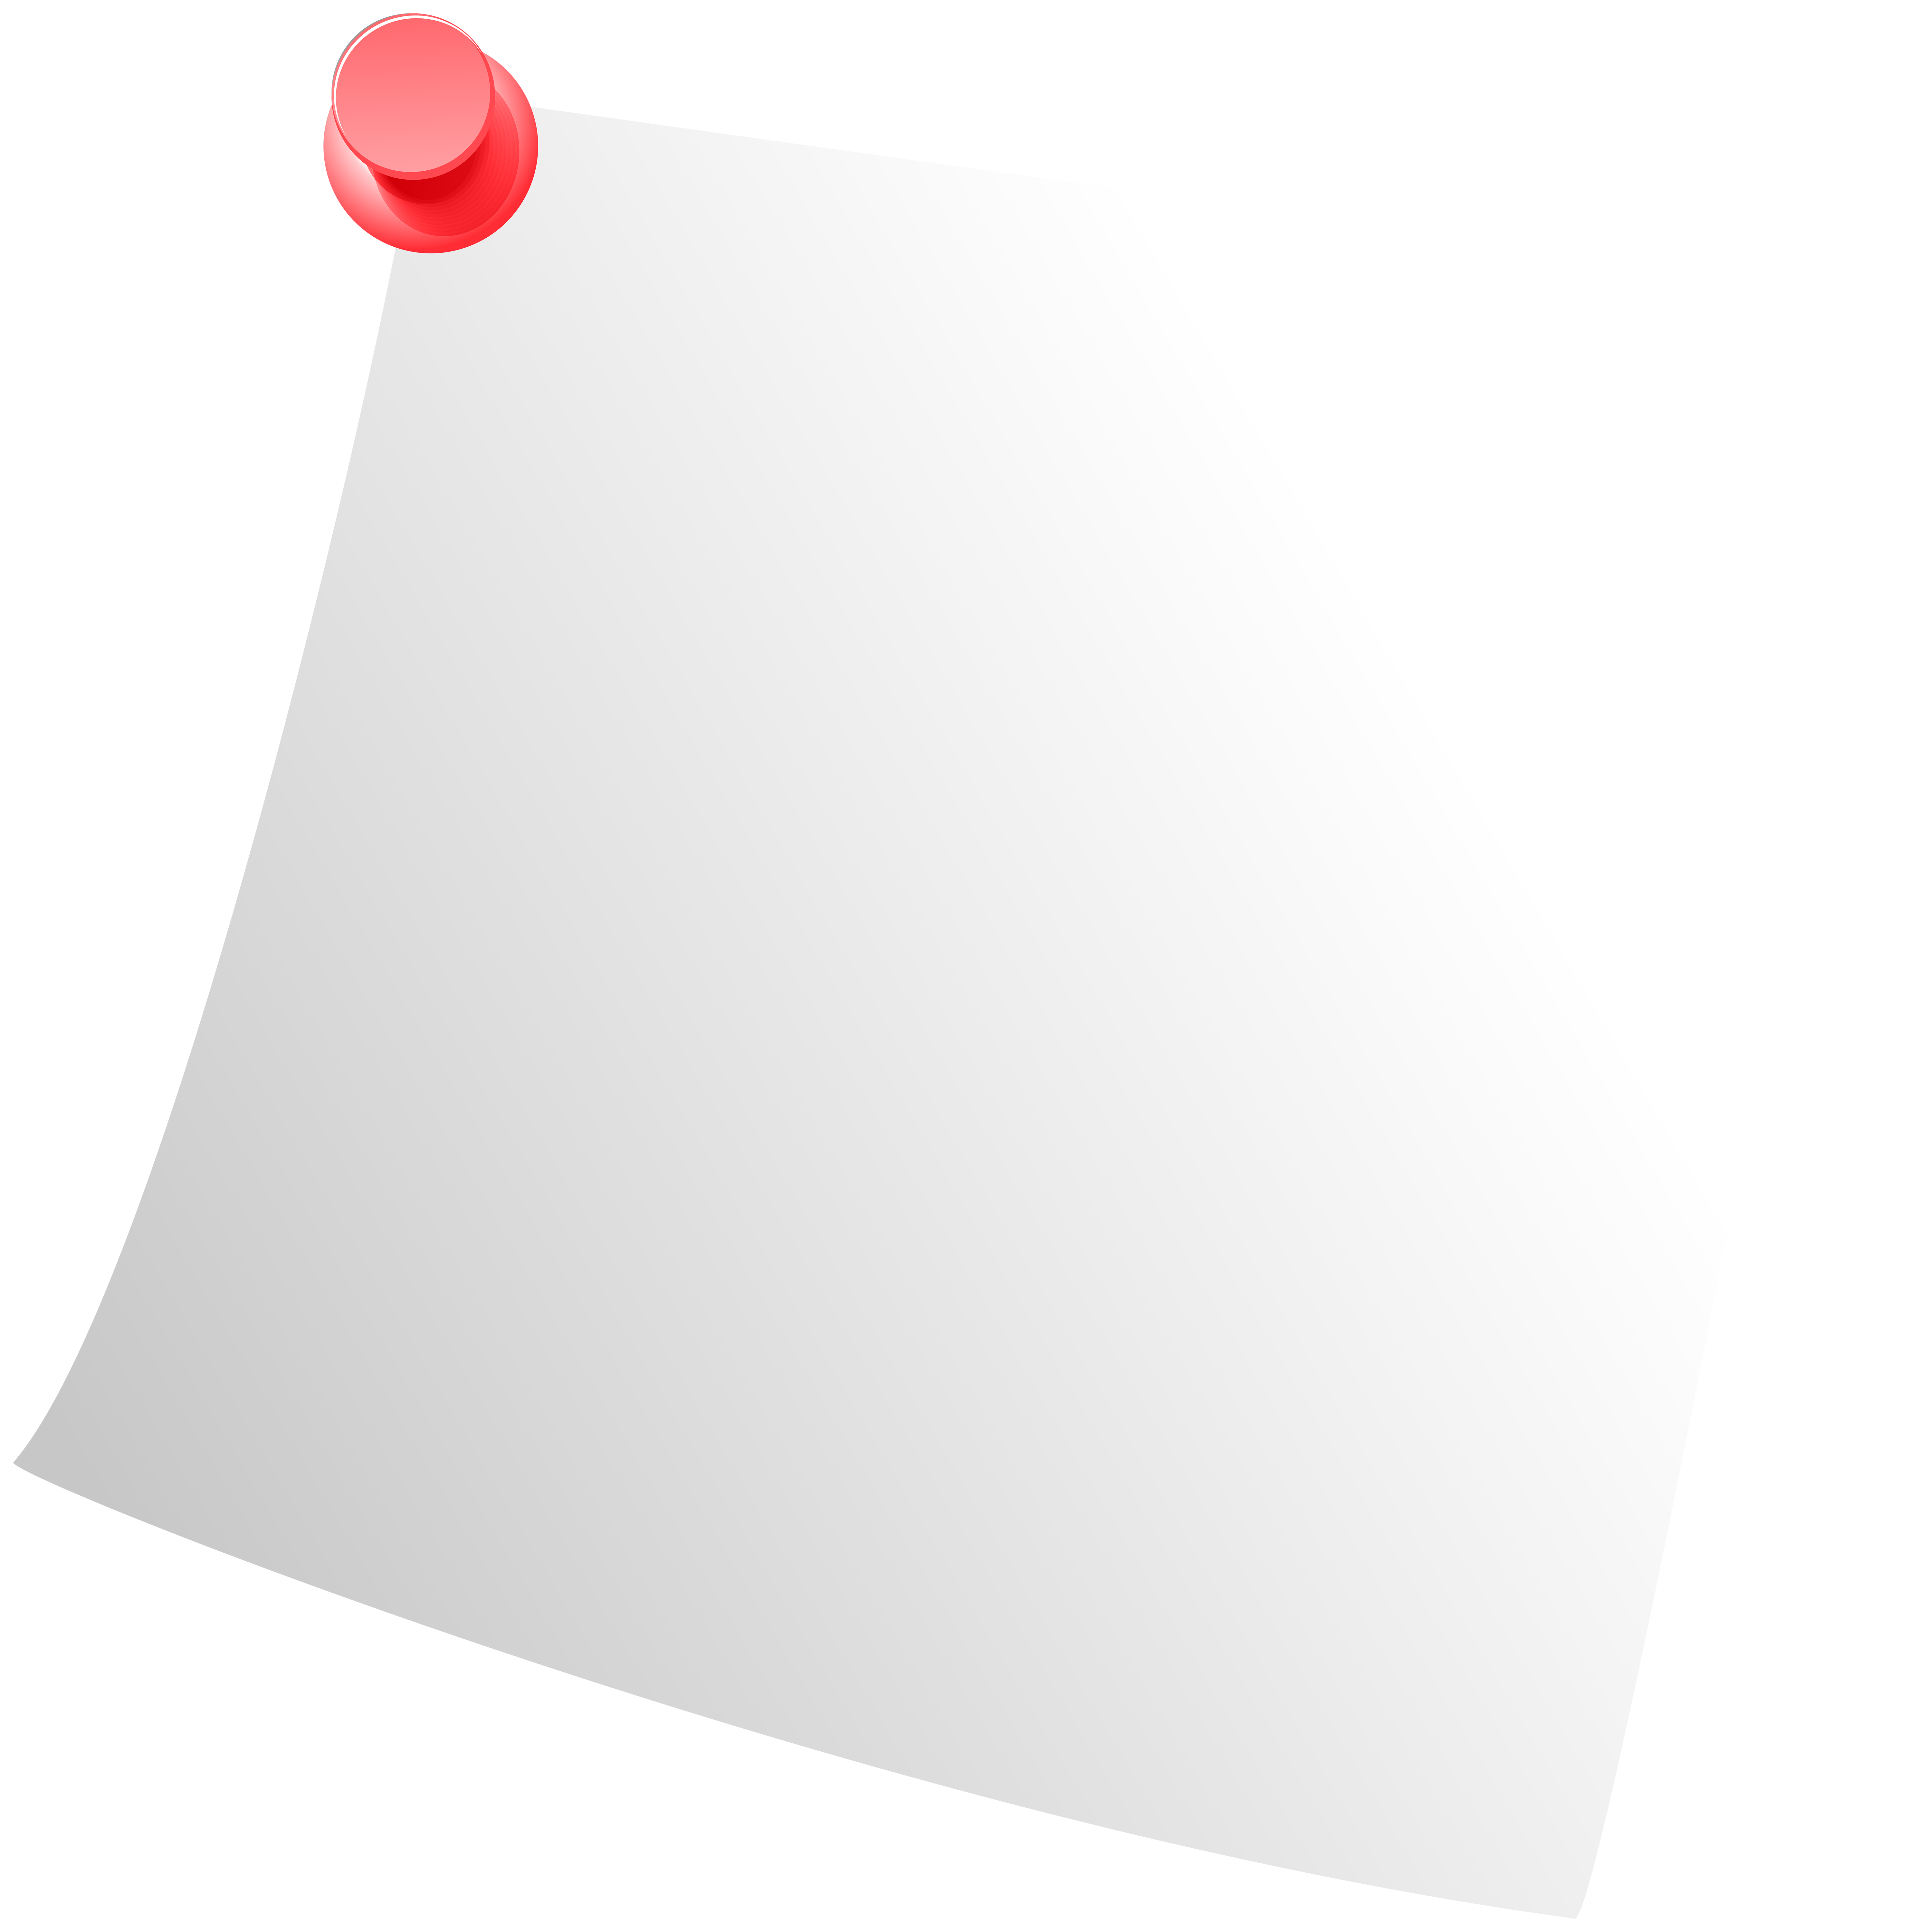 White png clip art. Paper clipart sticky note